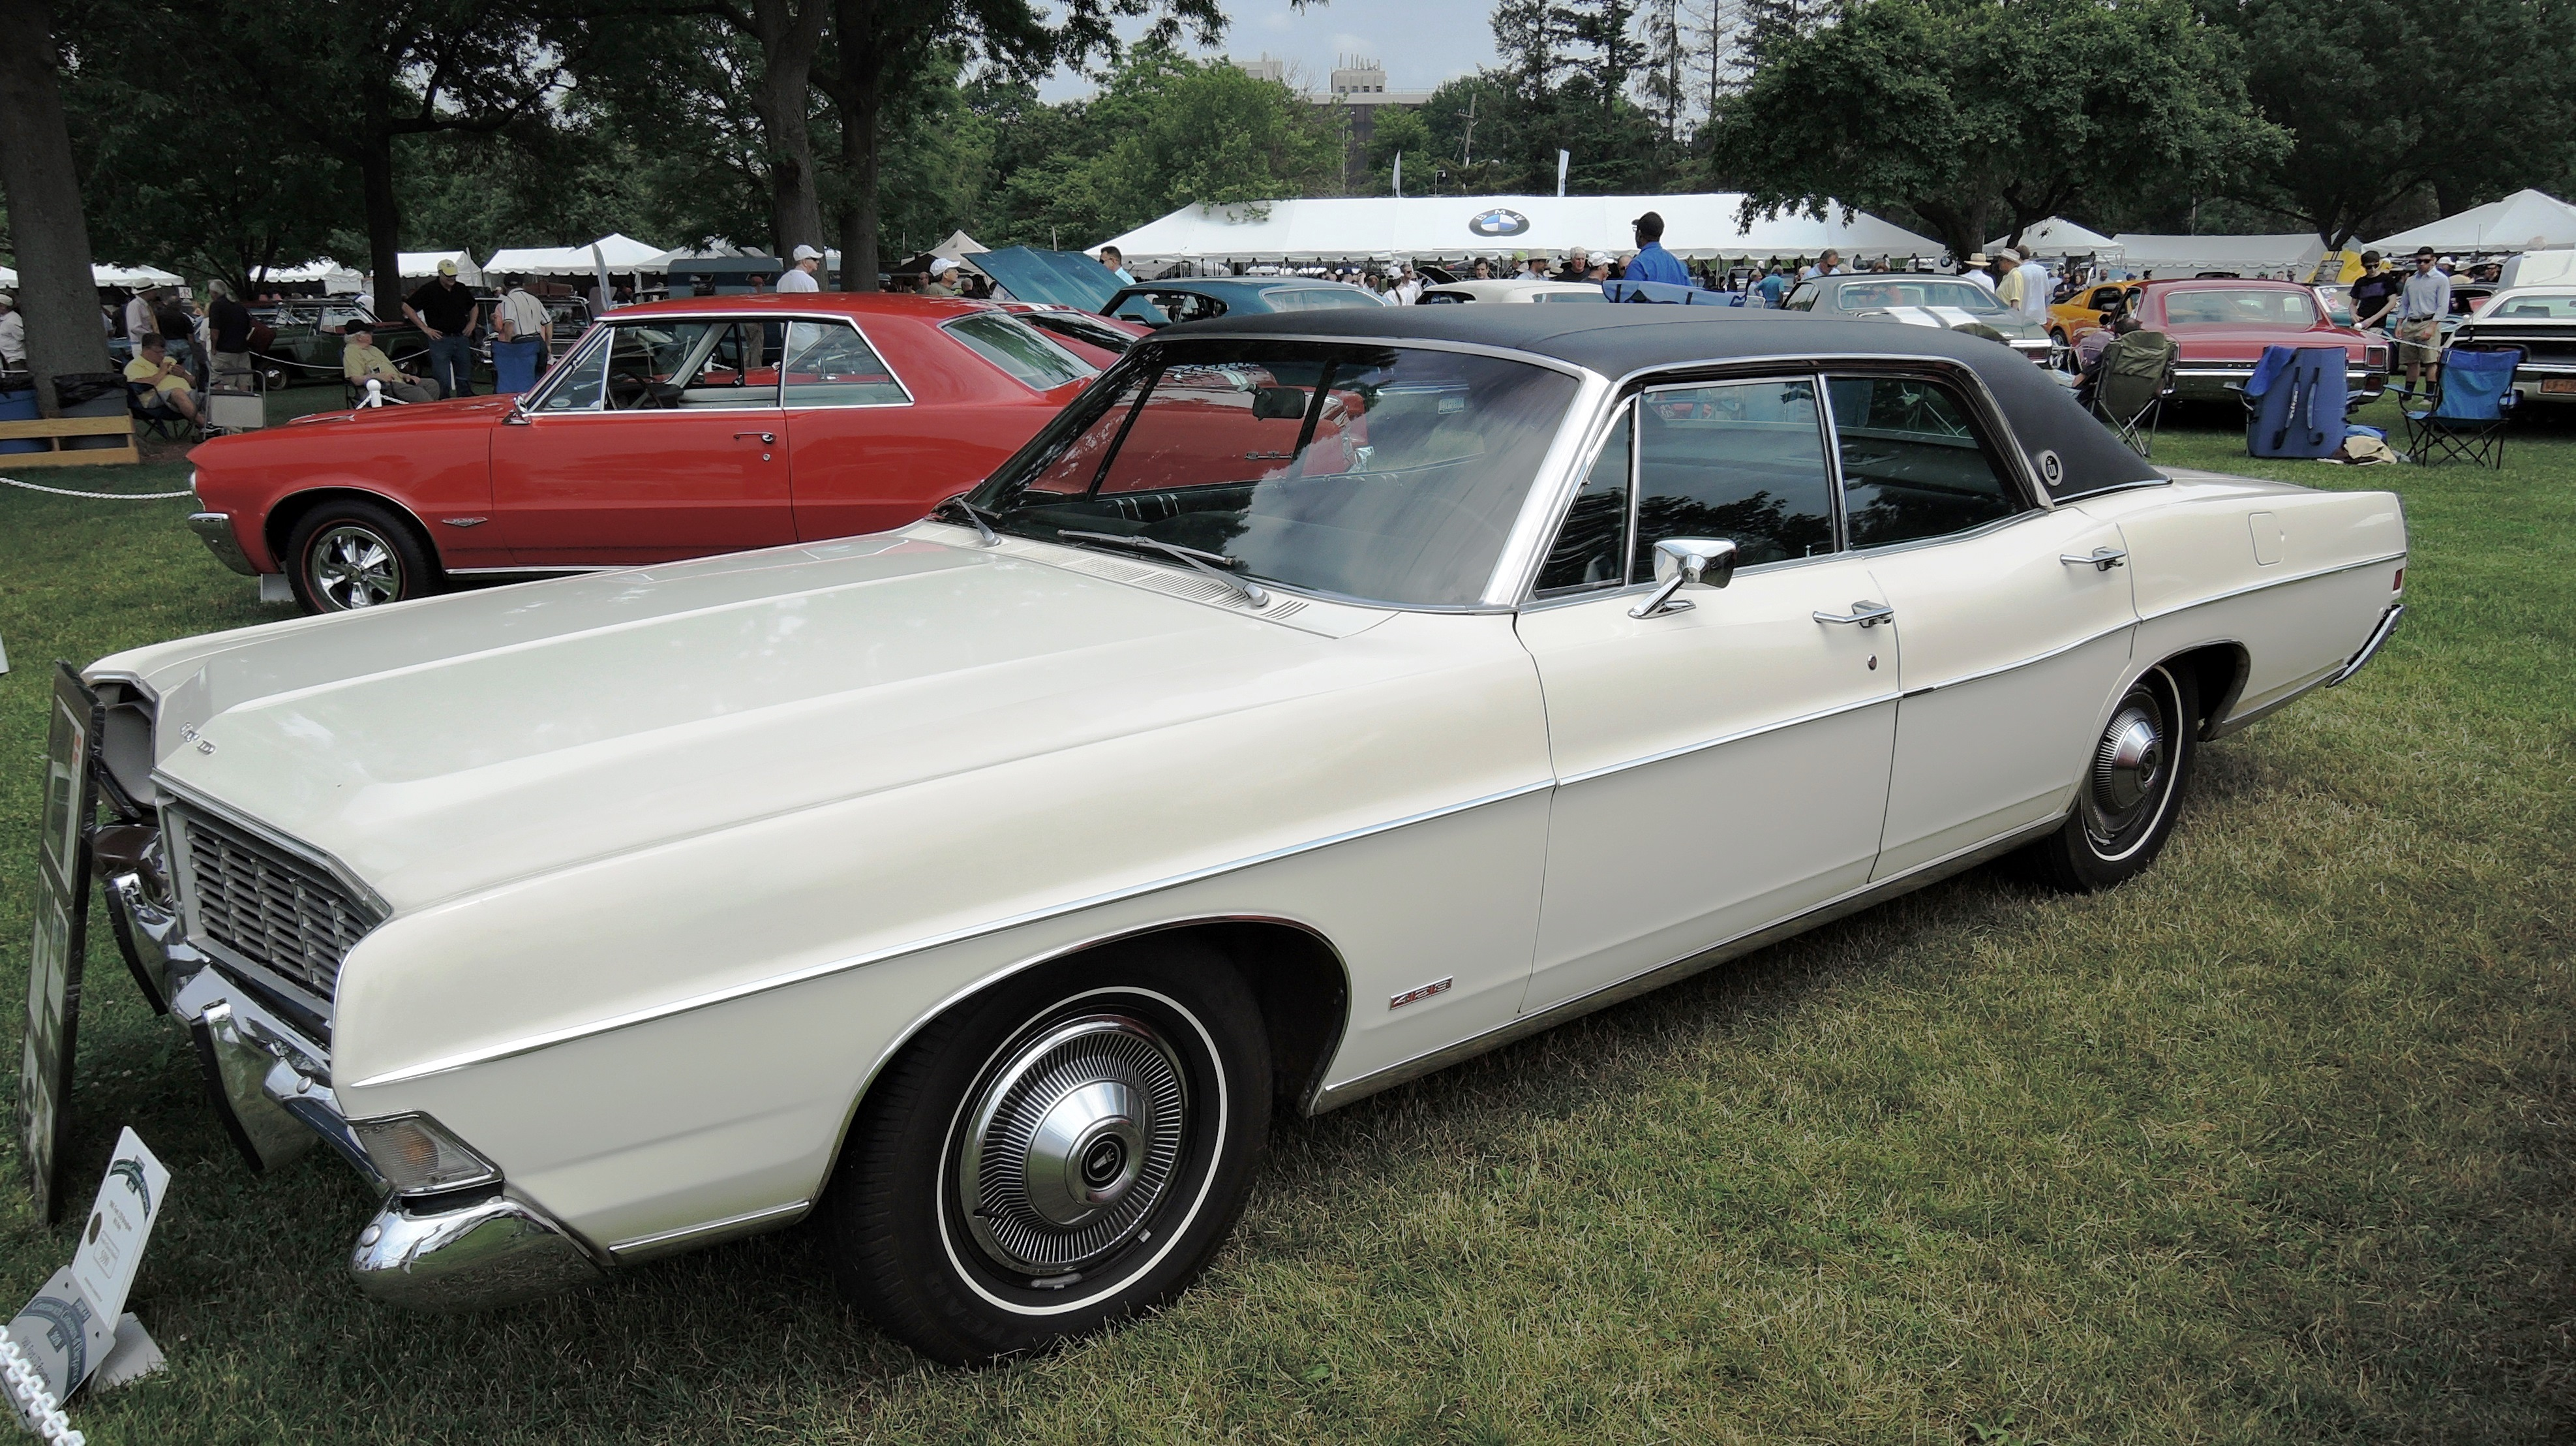 white 1968 Ford LTD Brougham - greenwich concours